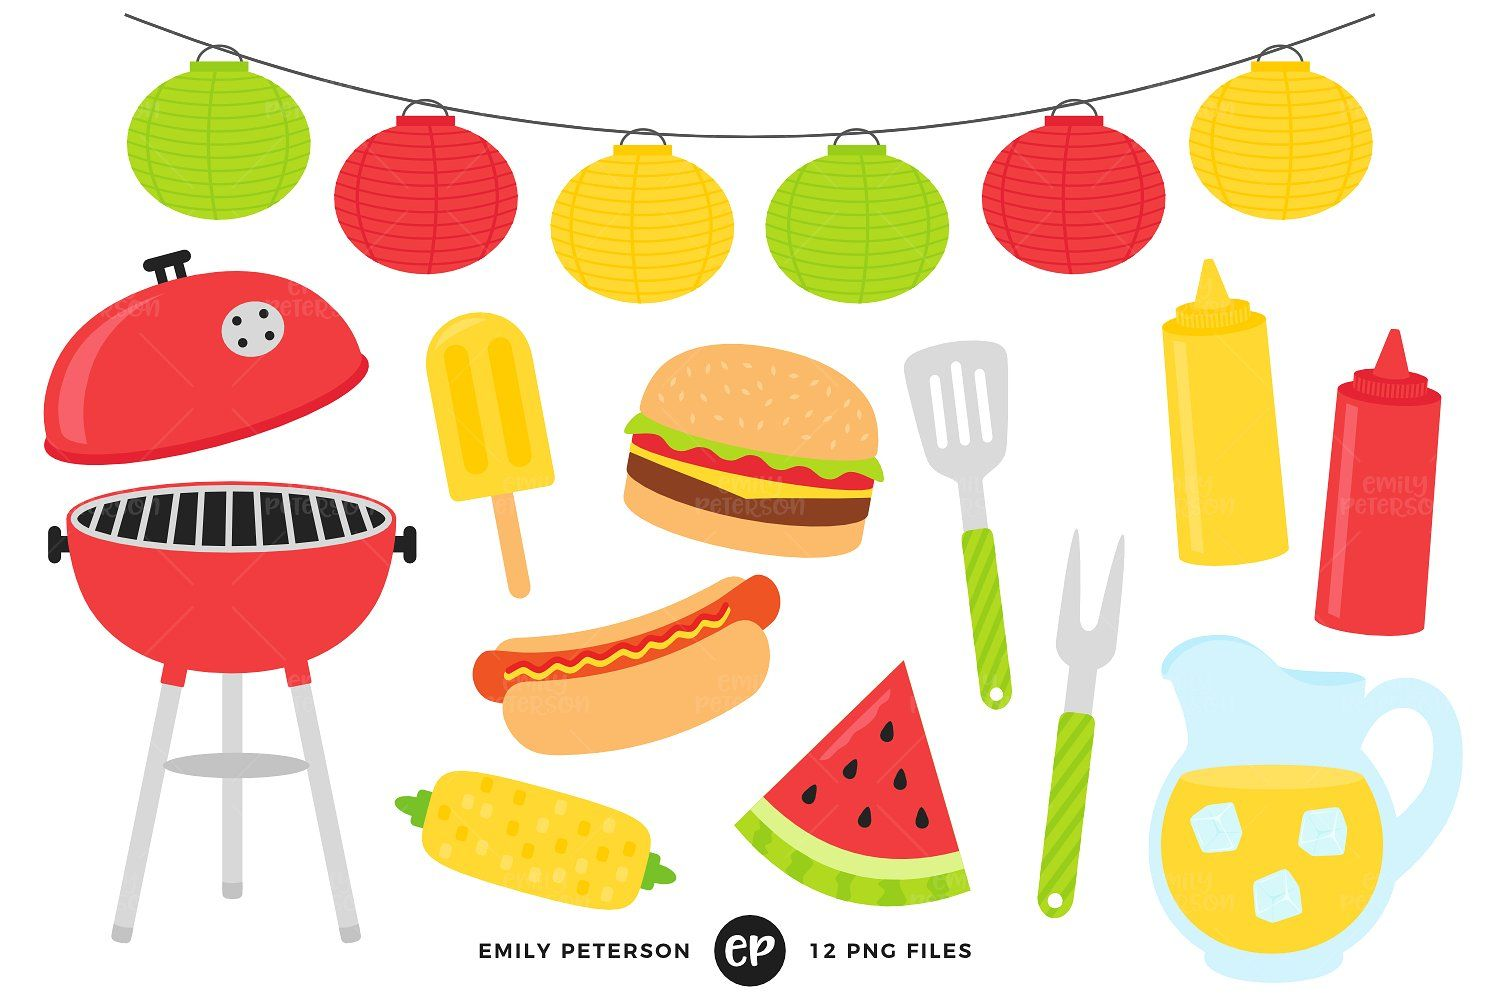 Bbq clipart for sale svg royalty free library Pin by gowayd on Anime | Clip art, Summer bbq, Graphic illustration svg royalty free library